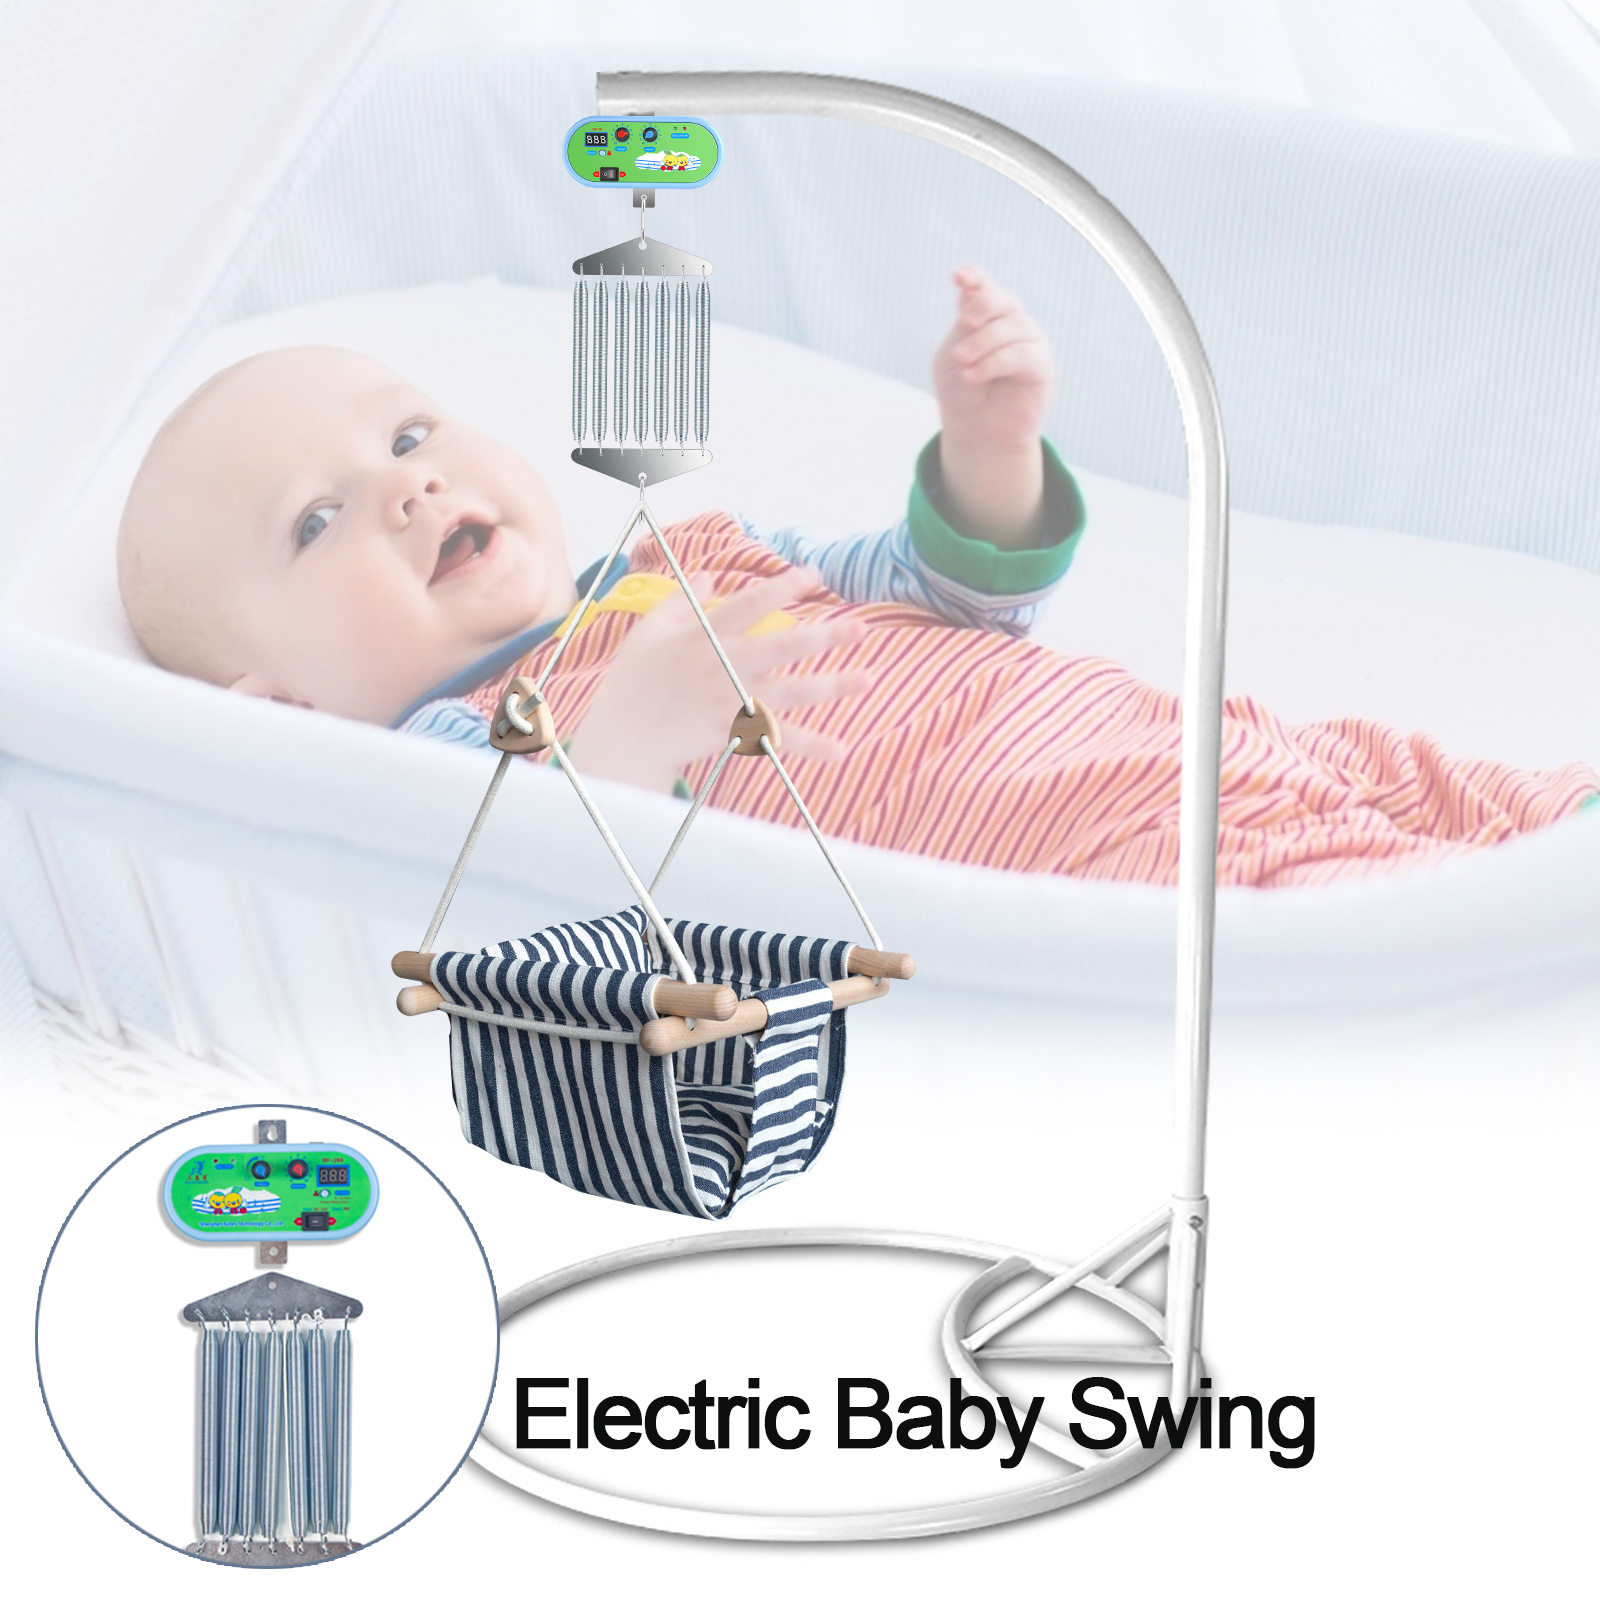 Electric Baby Swing 12W Baby Cradle Controller Infant Bouncer External Power Swing Driver Adjustable Timer With 7 Springs